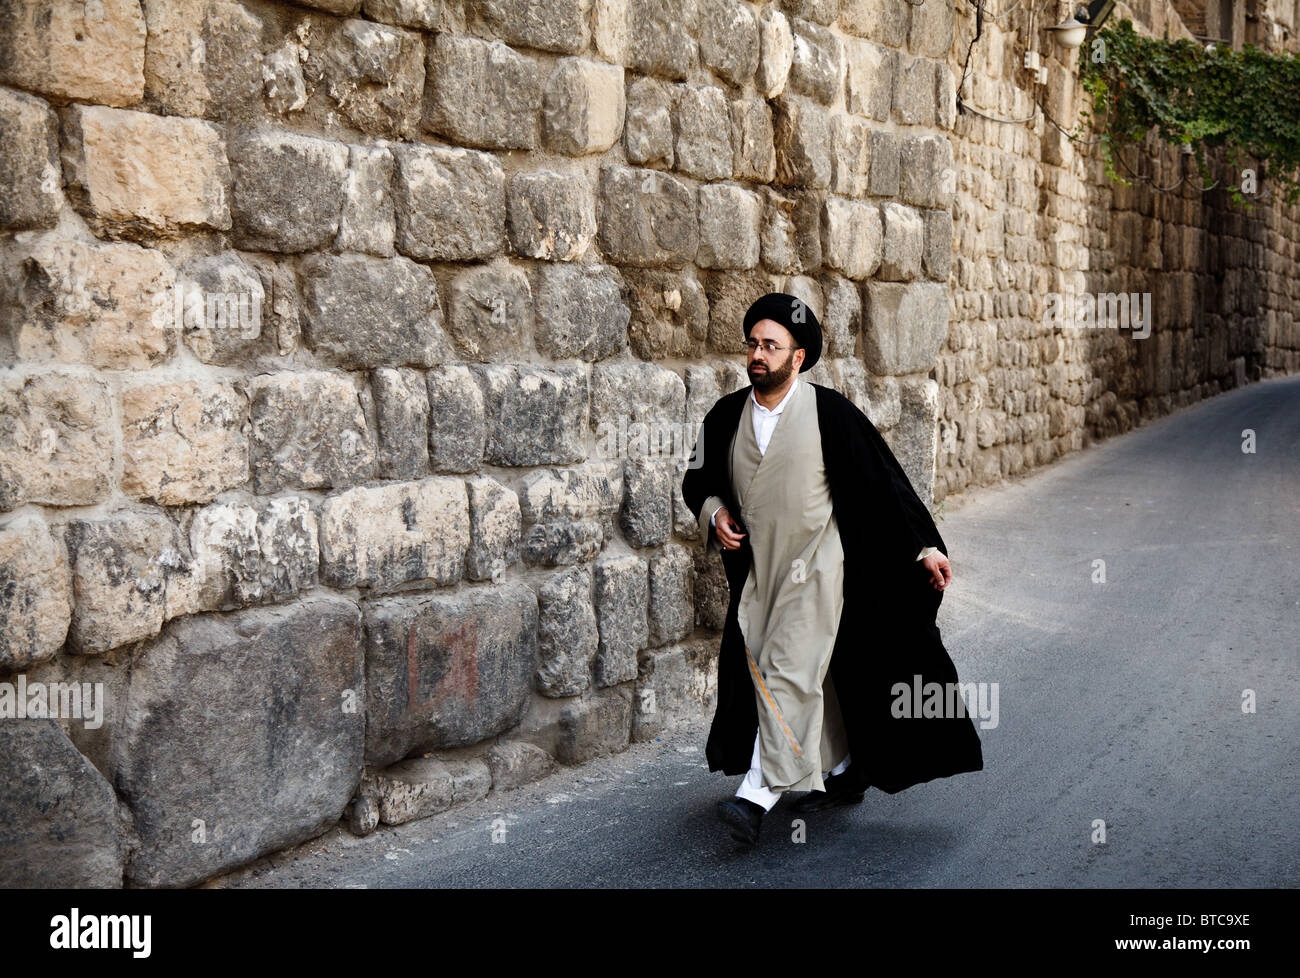 wall muslim single men It had little to do with the temple itself, but because the muslims now firmly control  the  it is called the 'wailing' wall because of the intense remorse jewish people   they went there instead, with the single mind of returning to the old covenant.